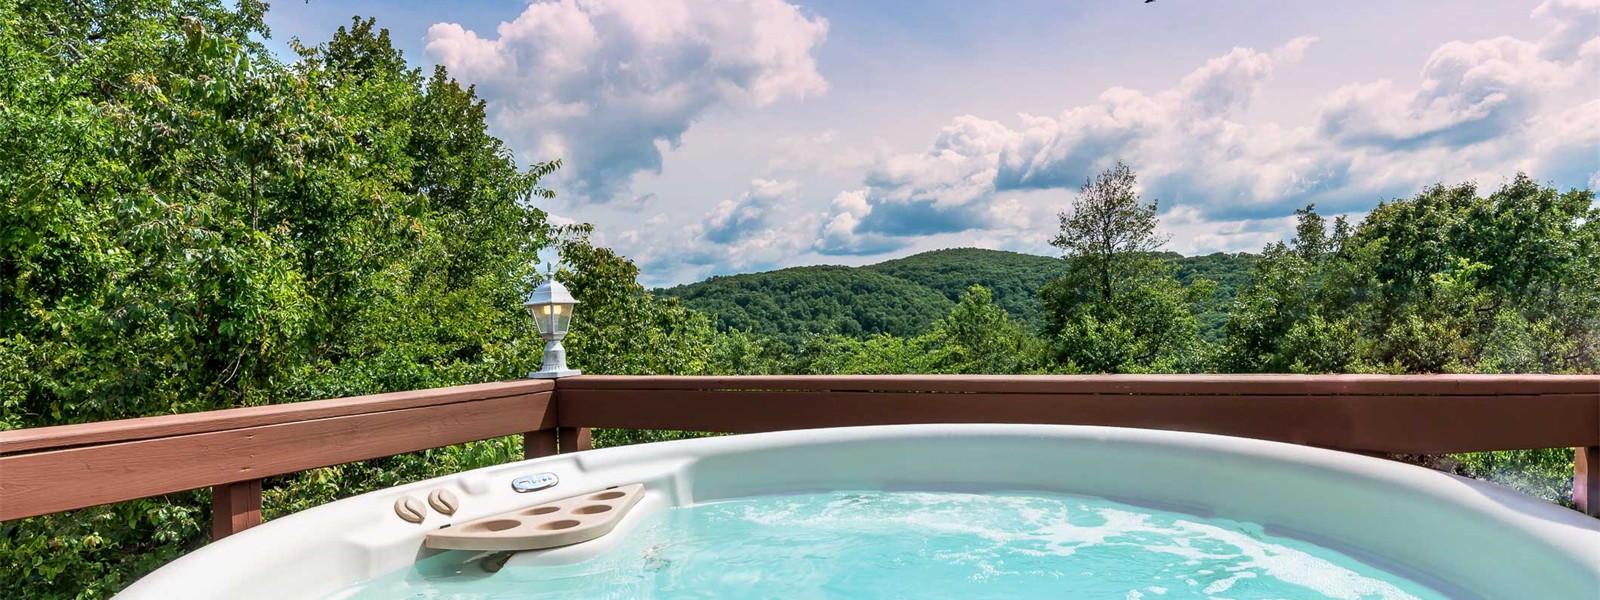 Sanctuary Suite hot tub view